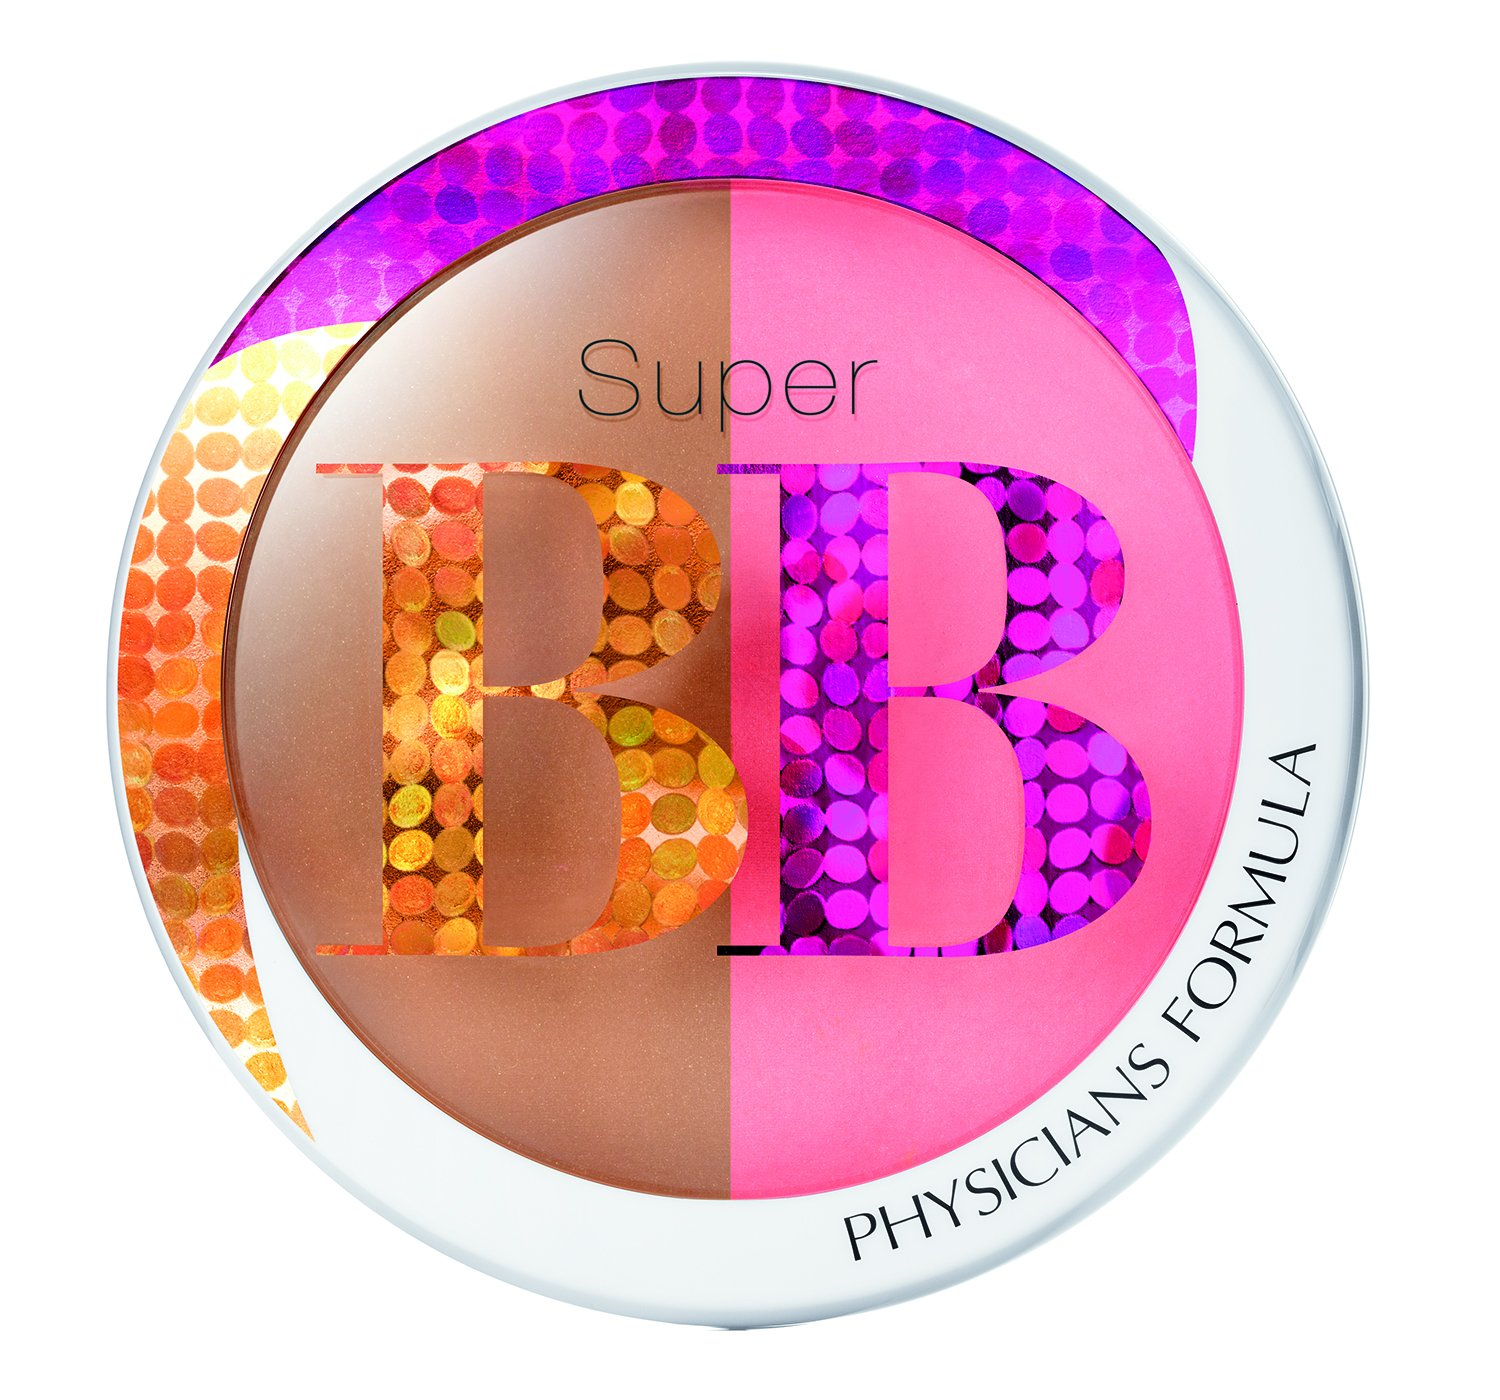 Physicians Formula - Physicians Formula Super BB All-in-1 Bronzer and Blush SPF 30, Light, 0.29 Ounce